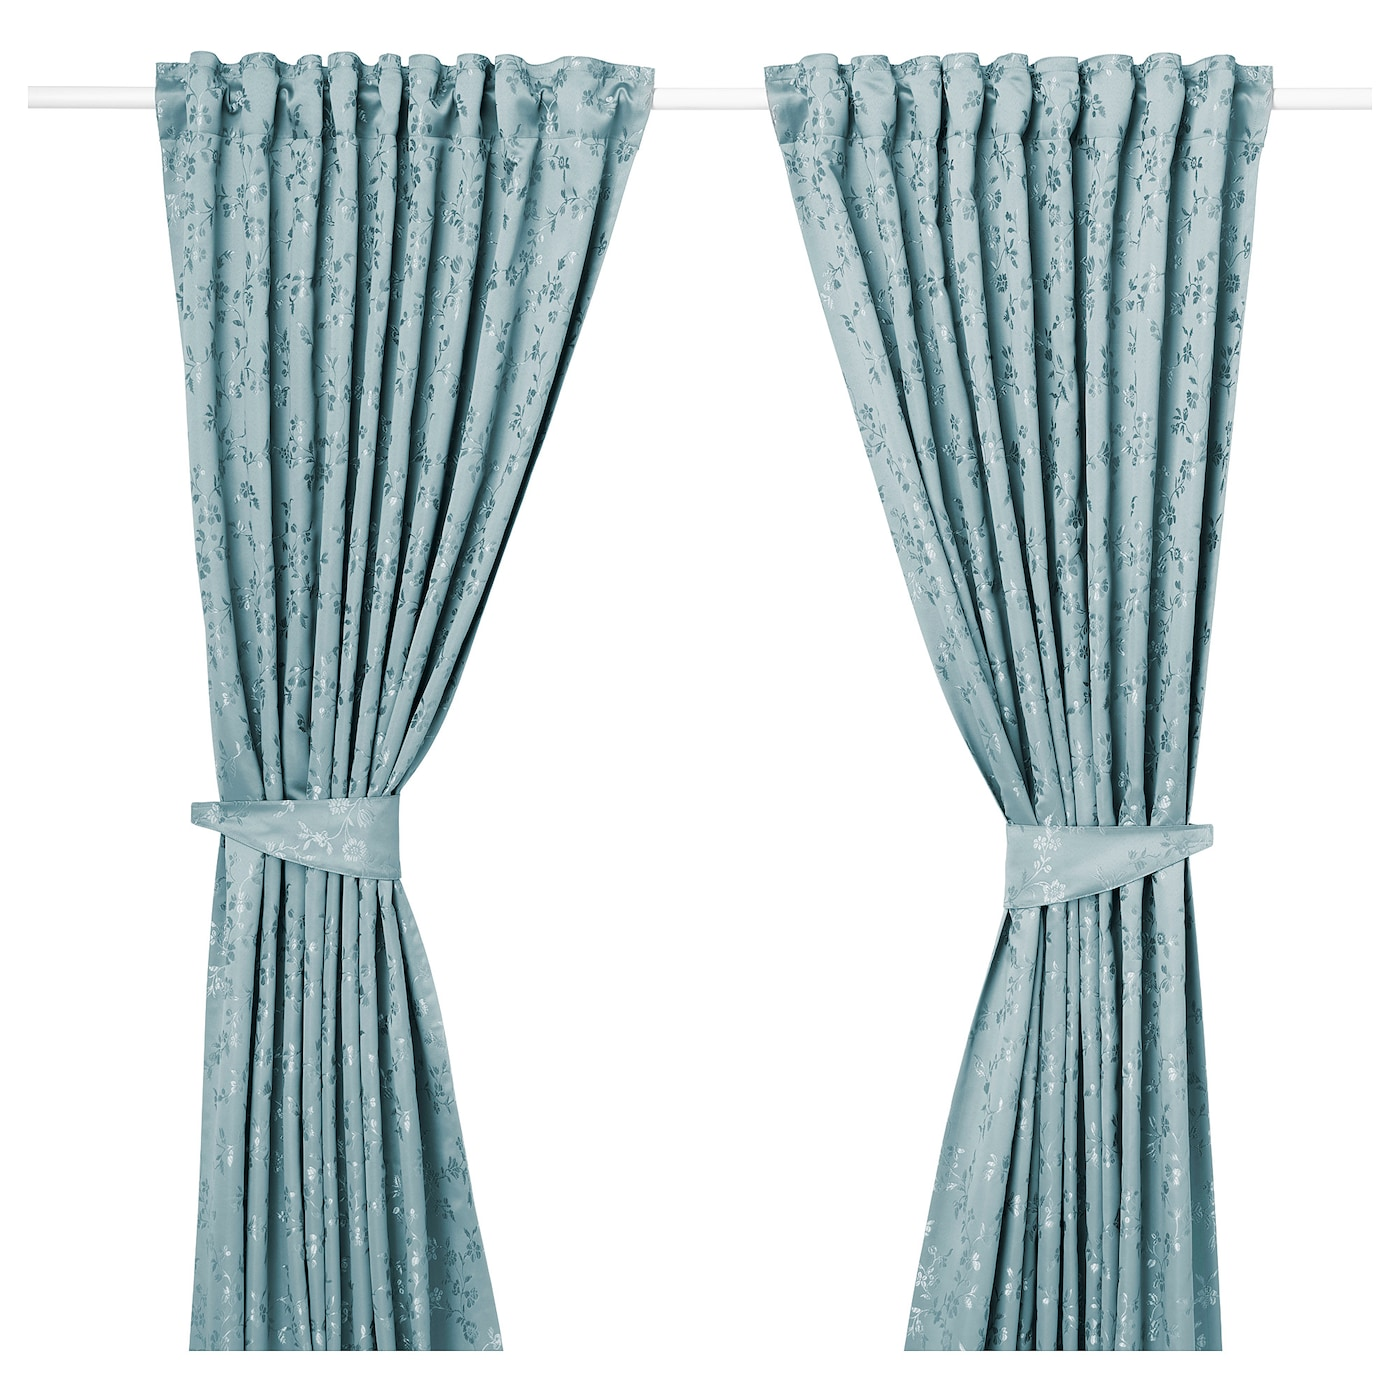 https://www.ikea.com/be/nl/images/products/lisabritt-gordijnen-met-embrasse-1-paar-blauw__0552041_pe658837_s5.jpg